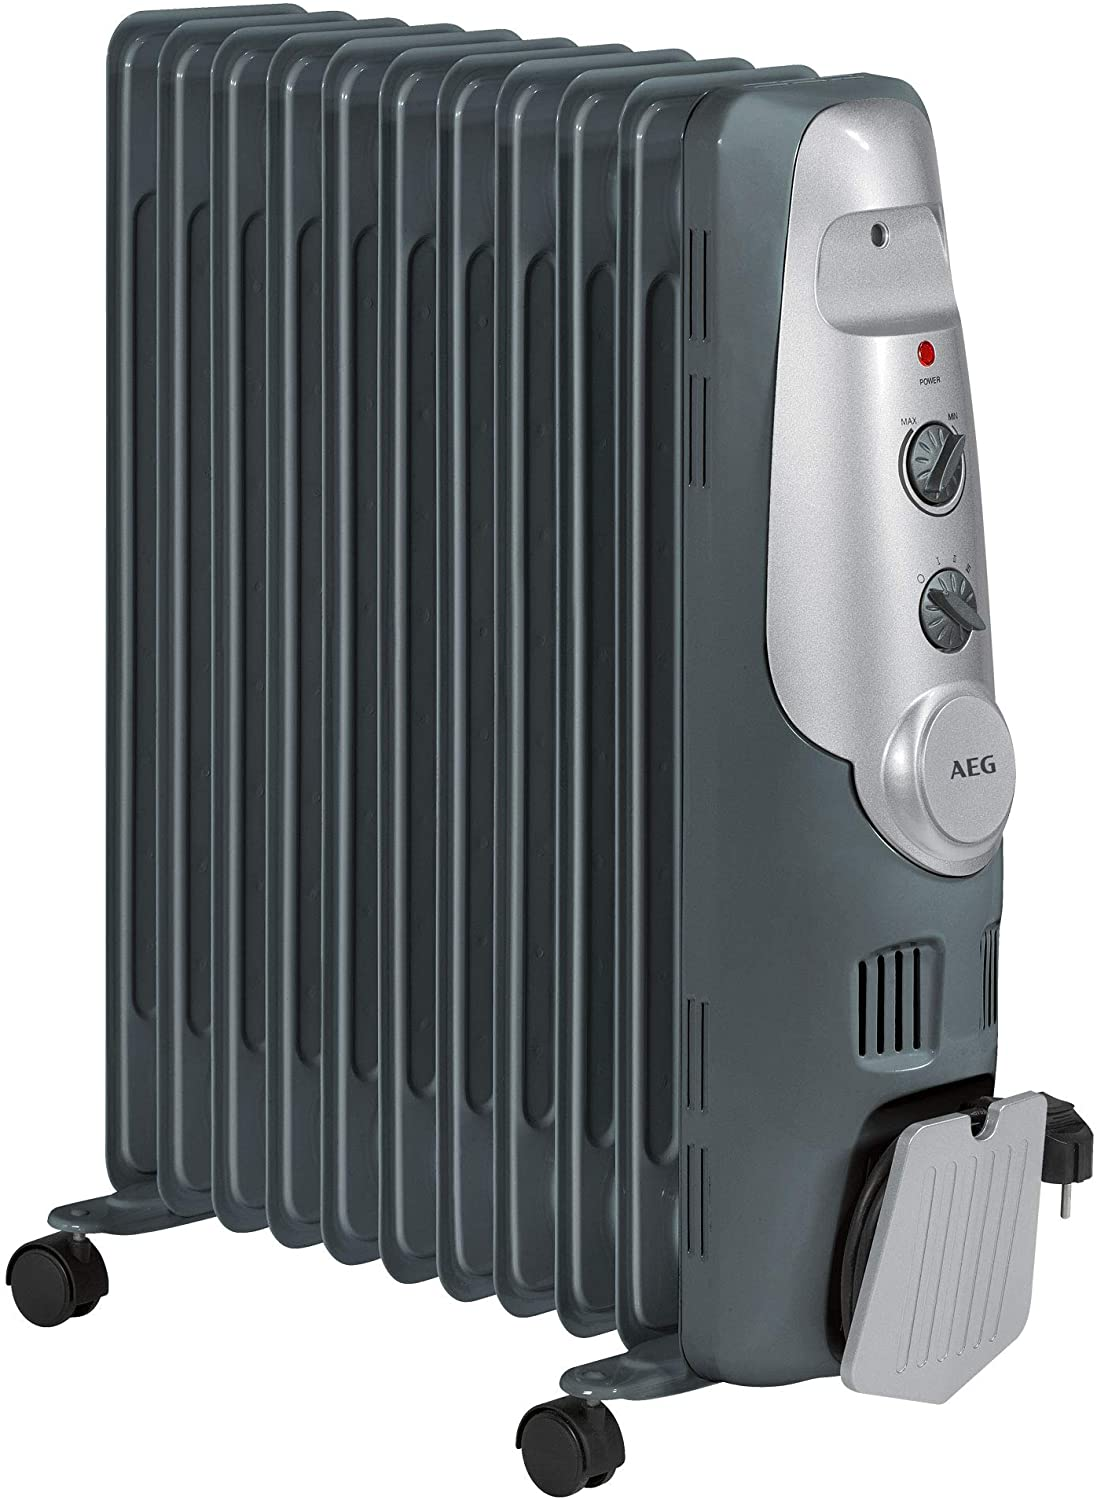 AEG 11 Fin Oil Radiator 2000 W